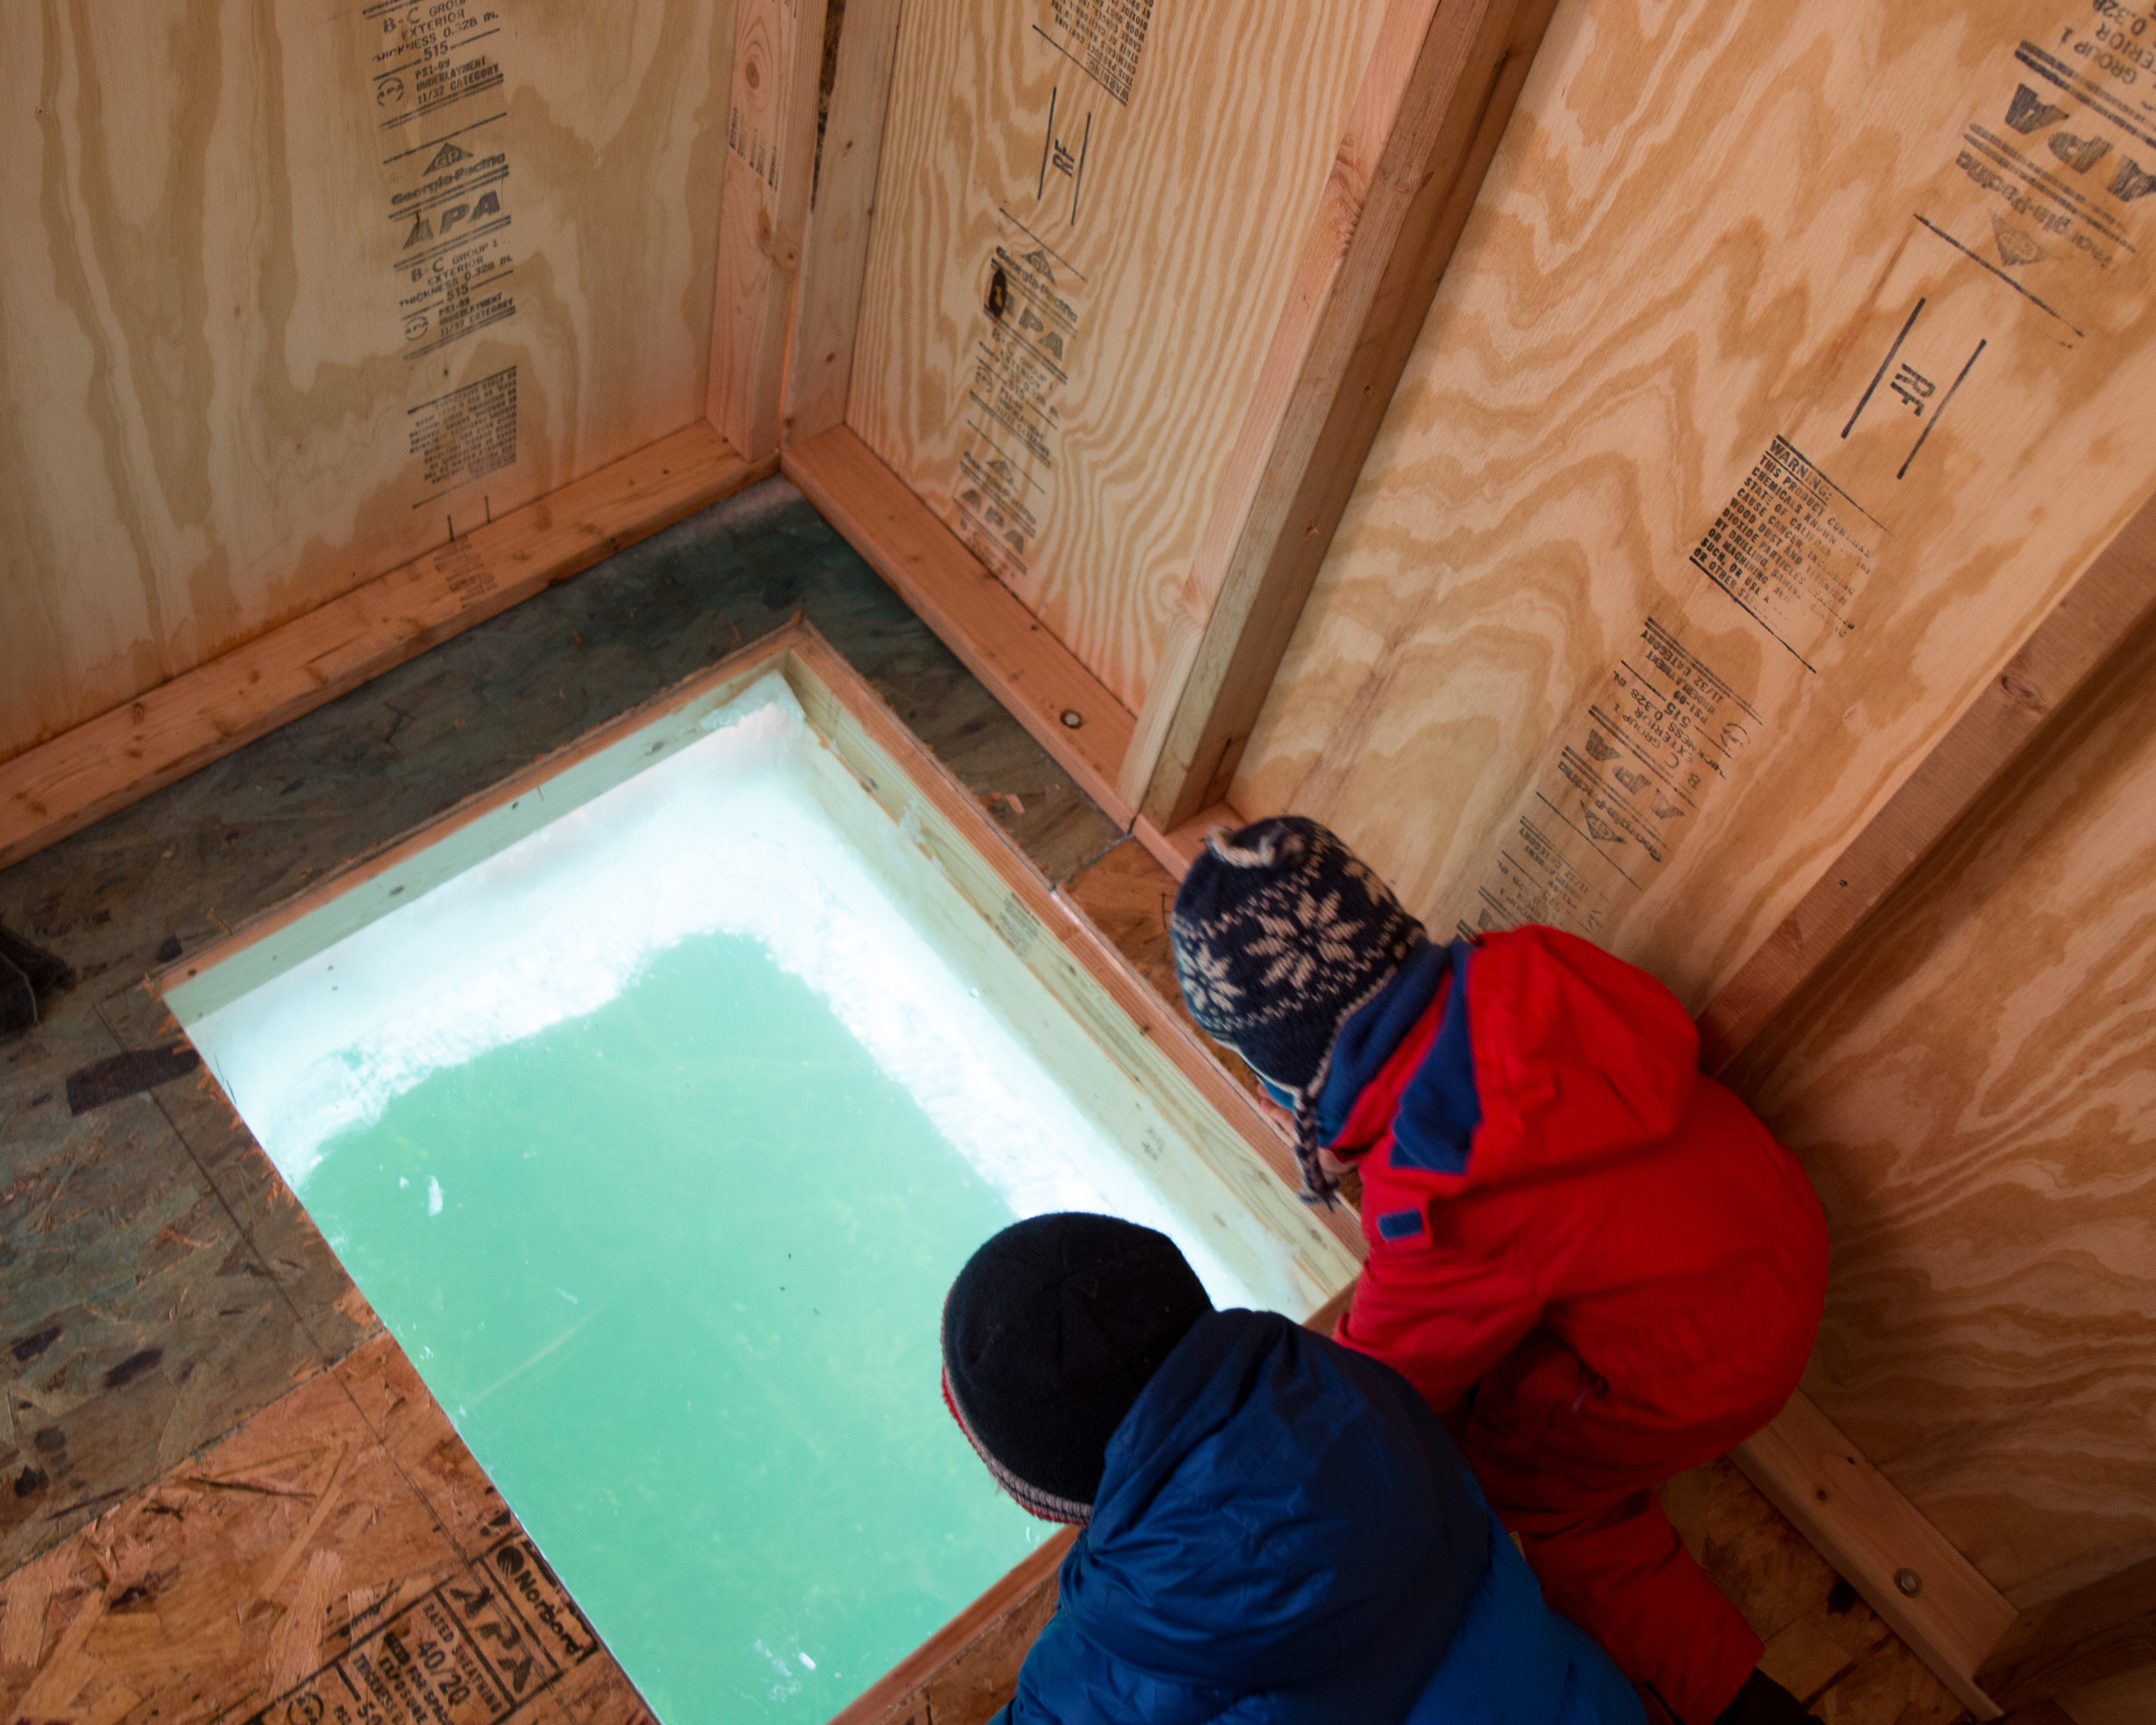 In the Sound + Vision Shanty - they have cut straight through the ice and allow you a glimpse of life below. Truly captivating!